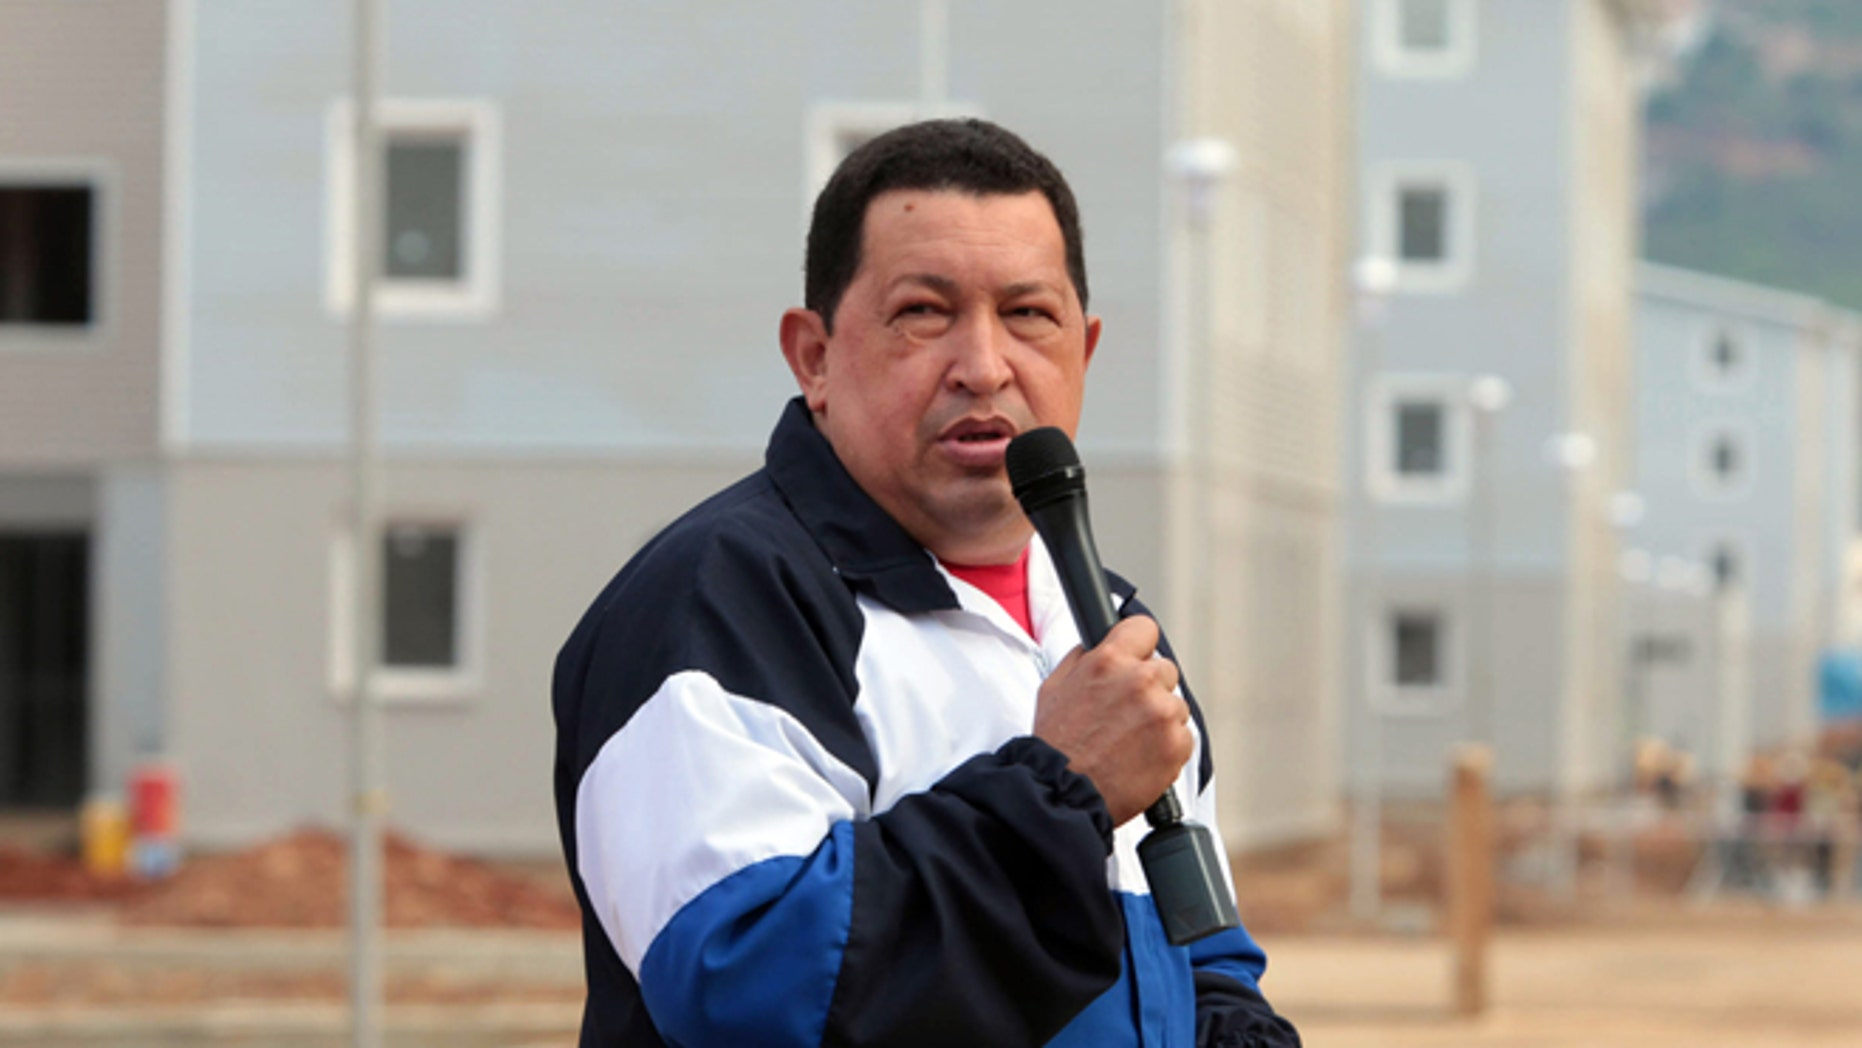 In this photo released by Miraflores Press Office, Venezuela's President Hugo Chavez speaks during a visit to a housing complex at Catia la Mar, Venezuela, Thursday, Aug. 9, 2012. Chavez says Venezuelan security forces have arrested a U.S. citizen and suspect he is a mercenary who could be involved in an alleged plot to destabilize the country if the opposition's candidate loses the upcoming presidential election. (AP Photo/Miraflores Press Office)